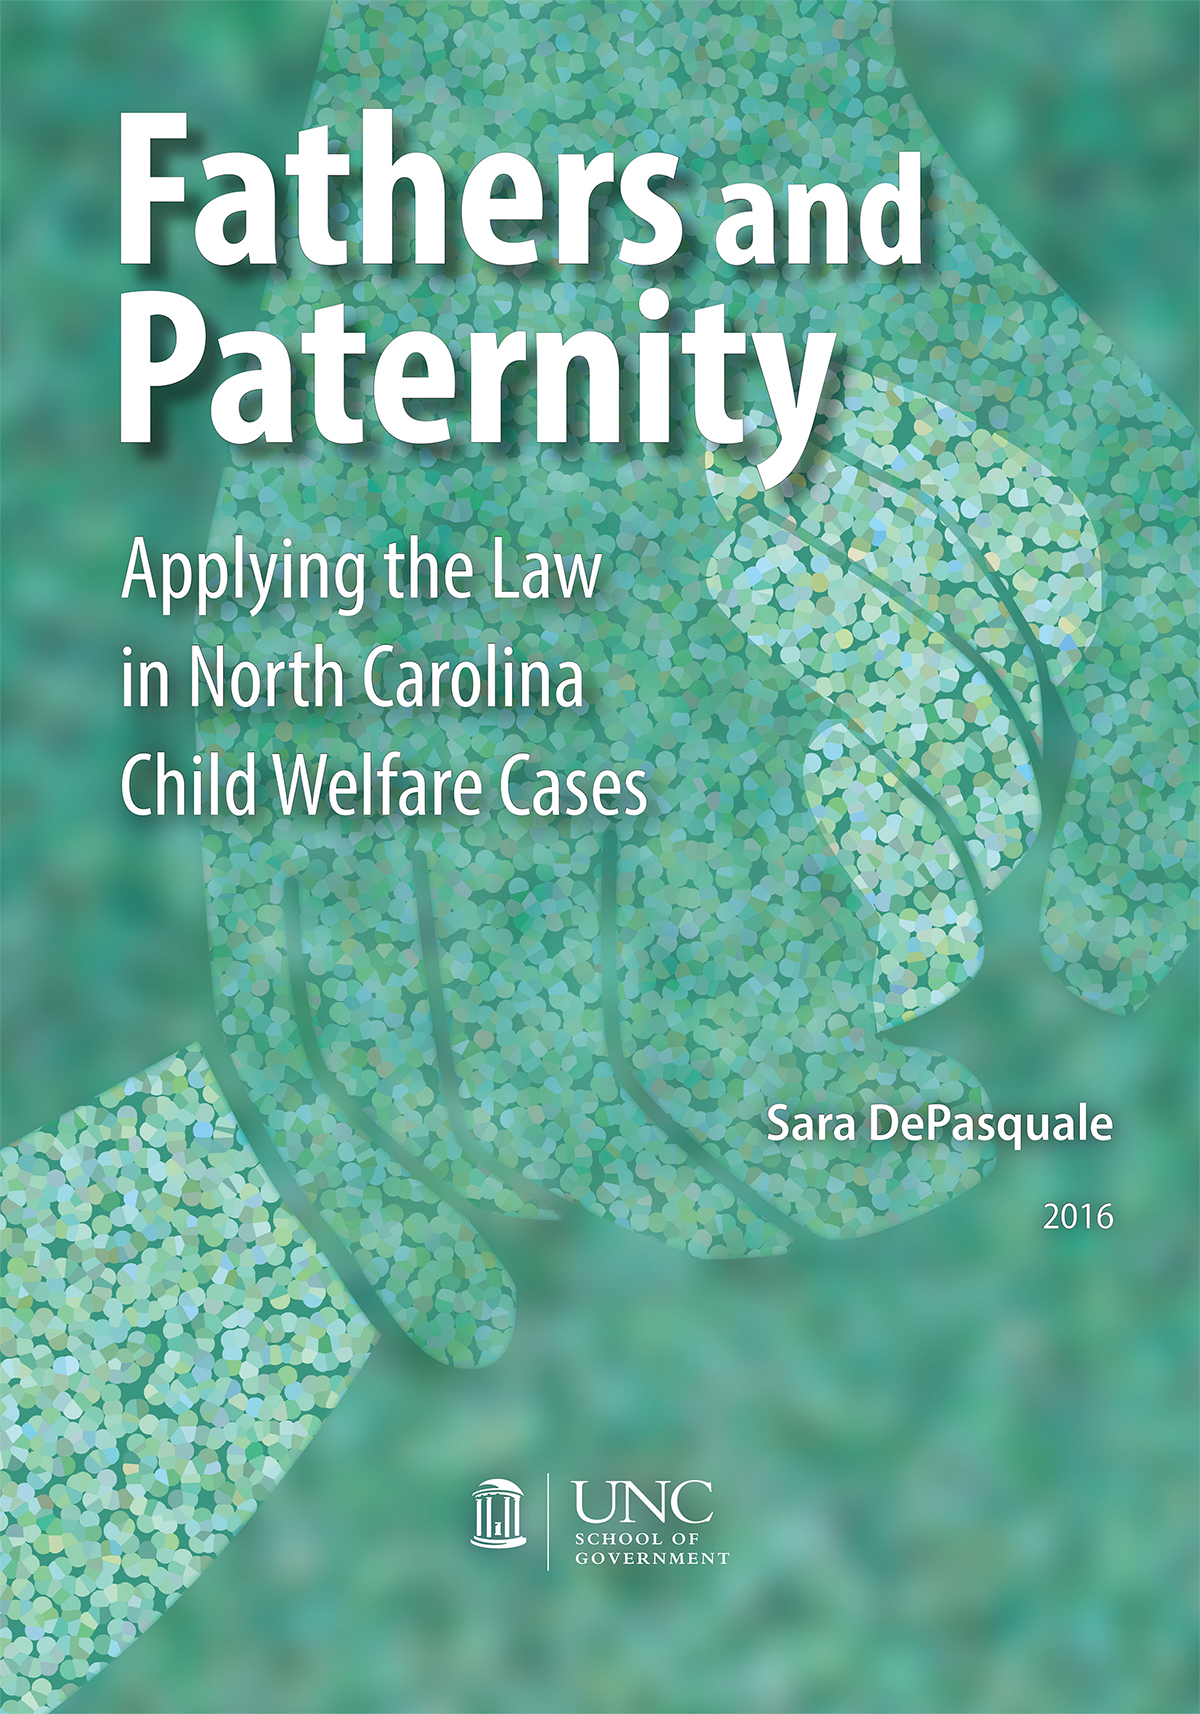 Fathers and Paternity: Applying the Law in North Carolina Child Welfare Cases